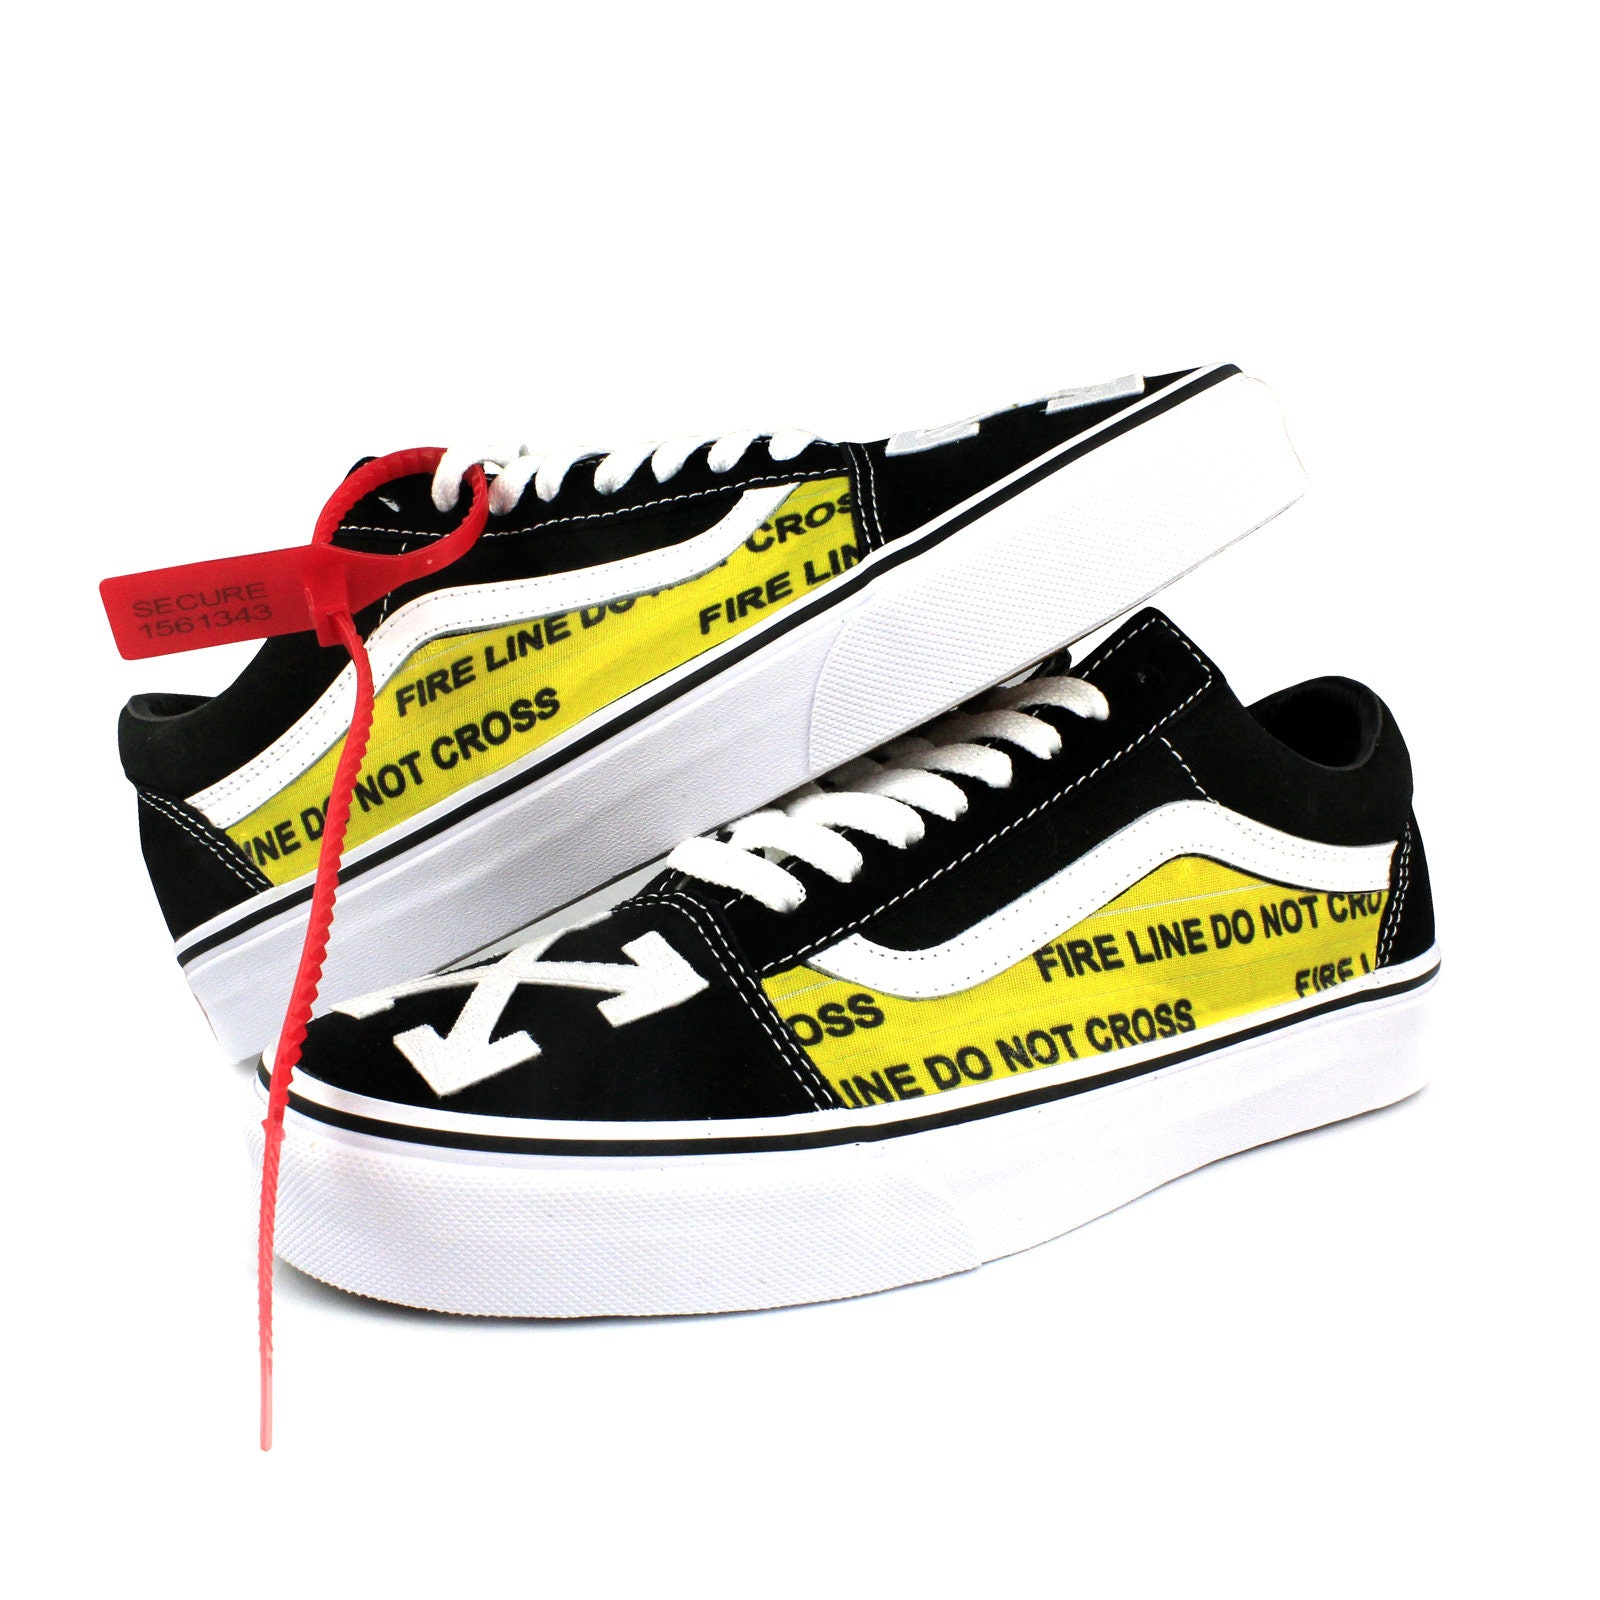 Vans Old Skool x Embroidery Off White Stripes Custom Embroidery x Uni-Sex Off The Wall Shoes 8f4d2e